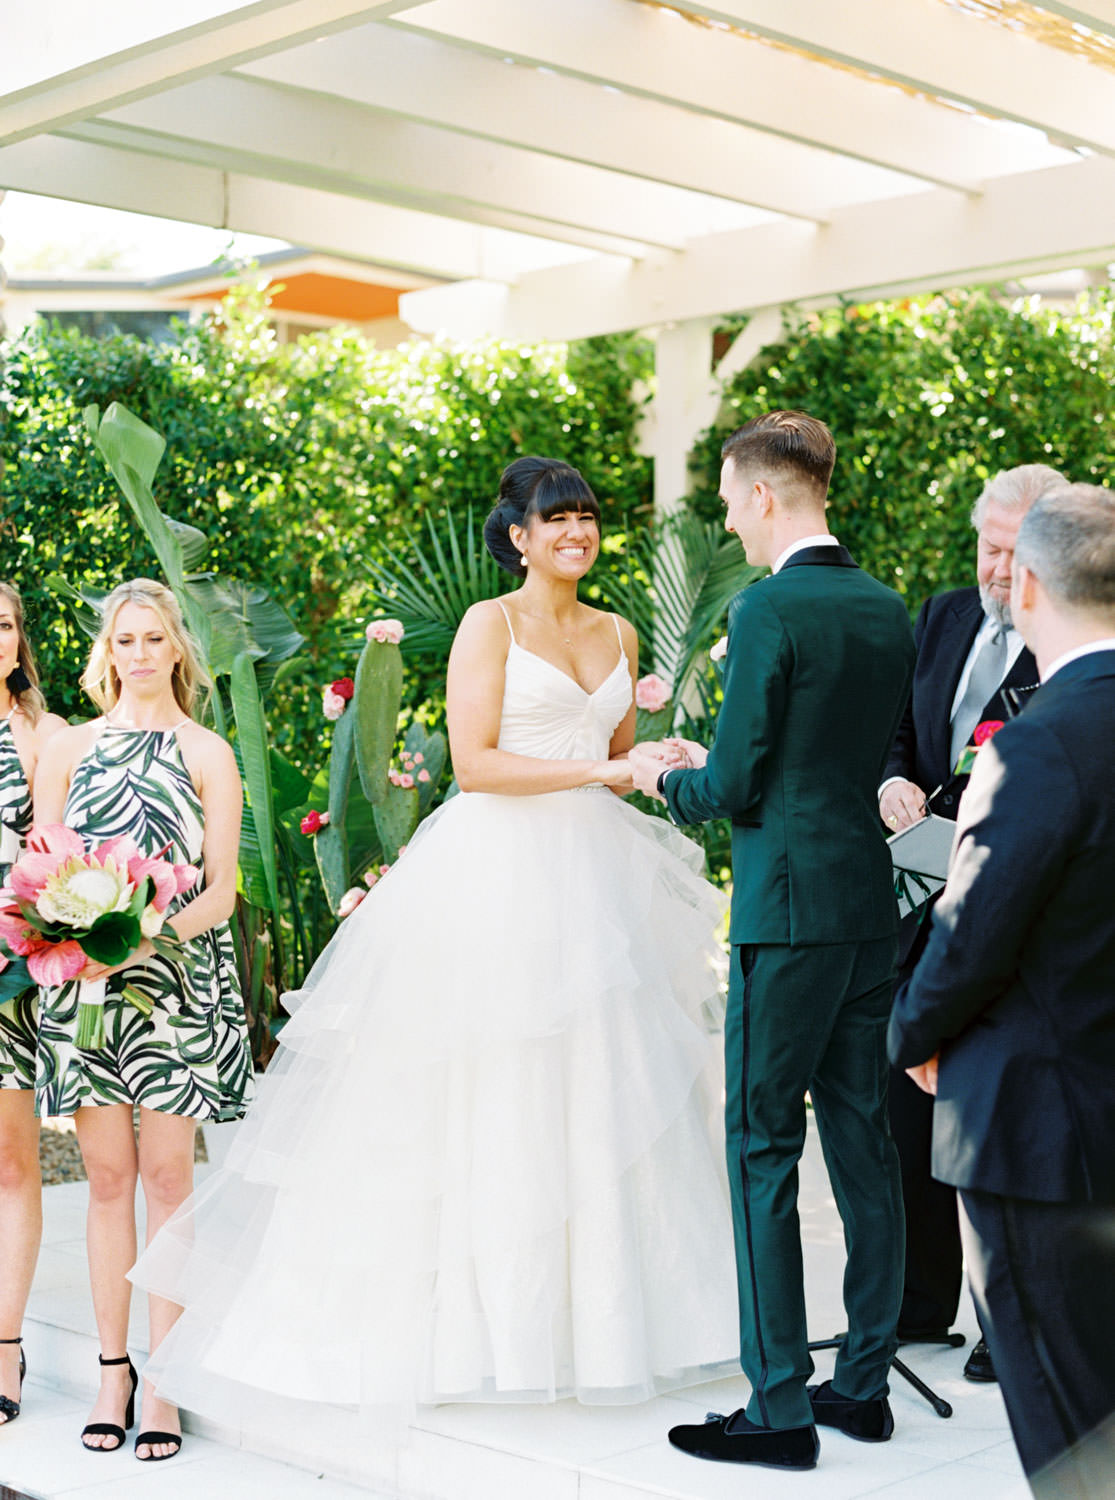 Bride in Matthew Christopher gown with beehive updo and groom in dark teal tuxedo. Bridesmaids in tropical palm leaf print short dresses carrying bouquets with palm leaves and pink anthurium. Ceremony white pergola site with large white planters filled with palm leaves and paddle cactus plants covered in blush and fuchsia pink flowers. Riviera Palm Springs Wedding by Cavin Elizabeth Photography